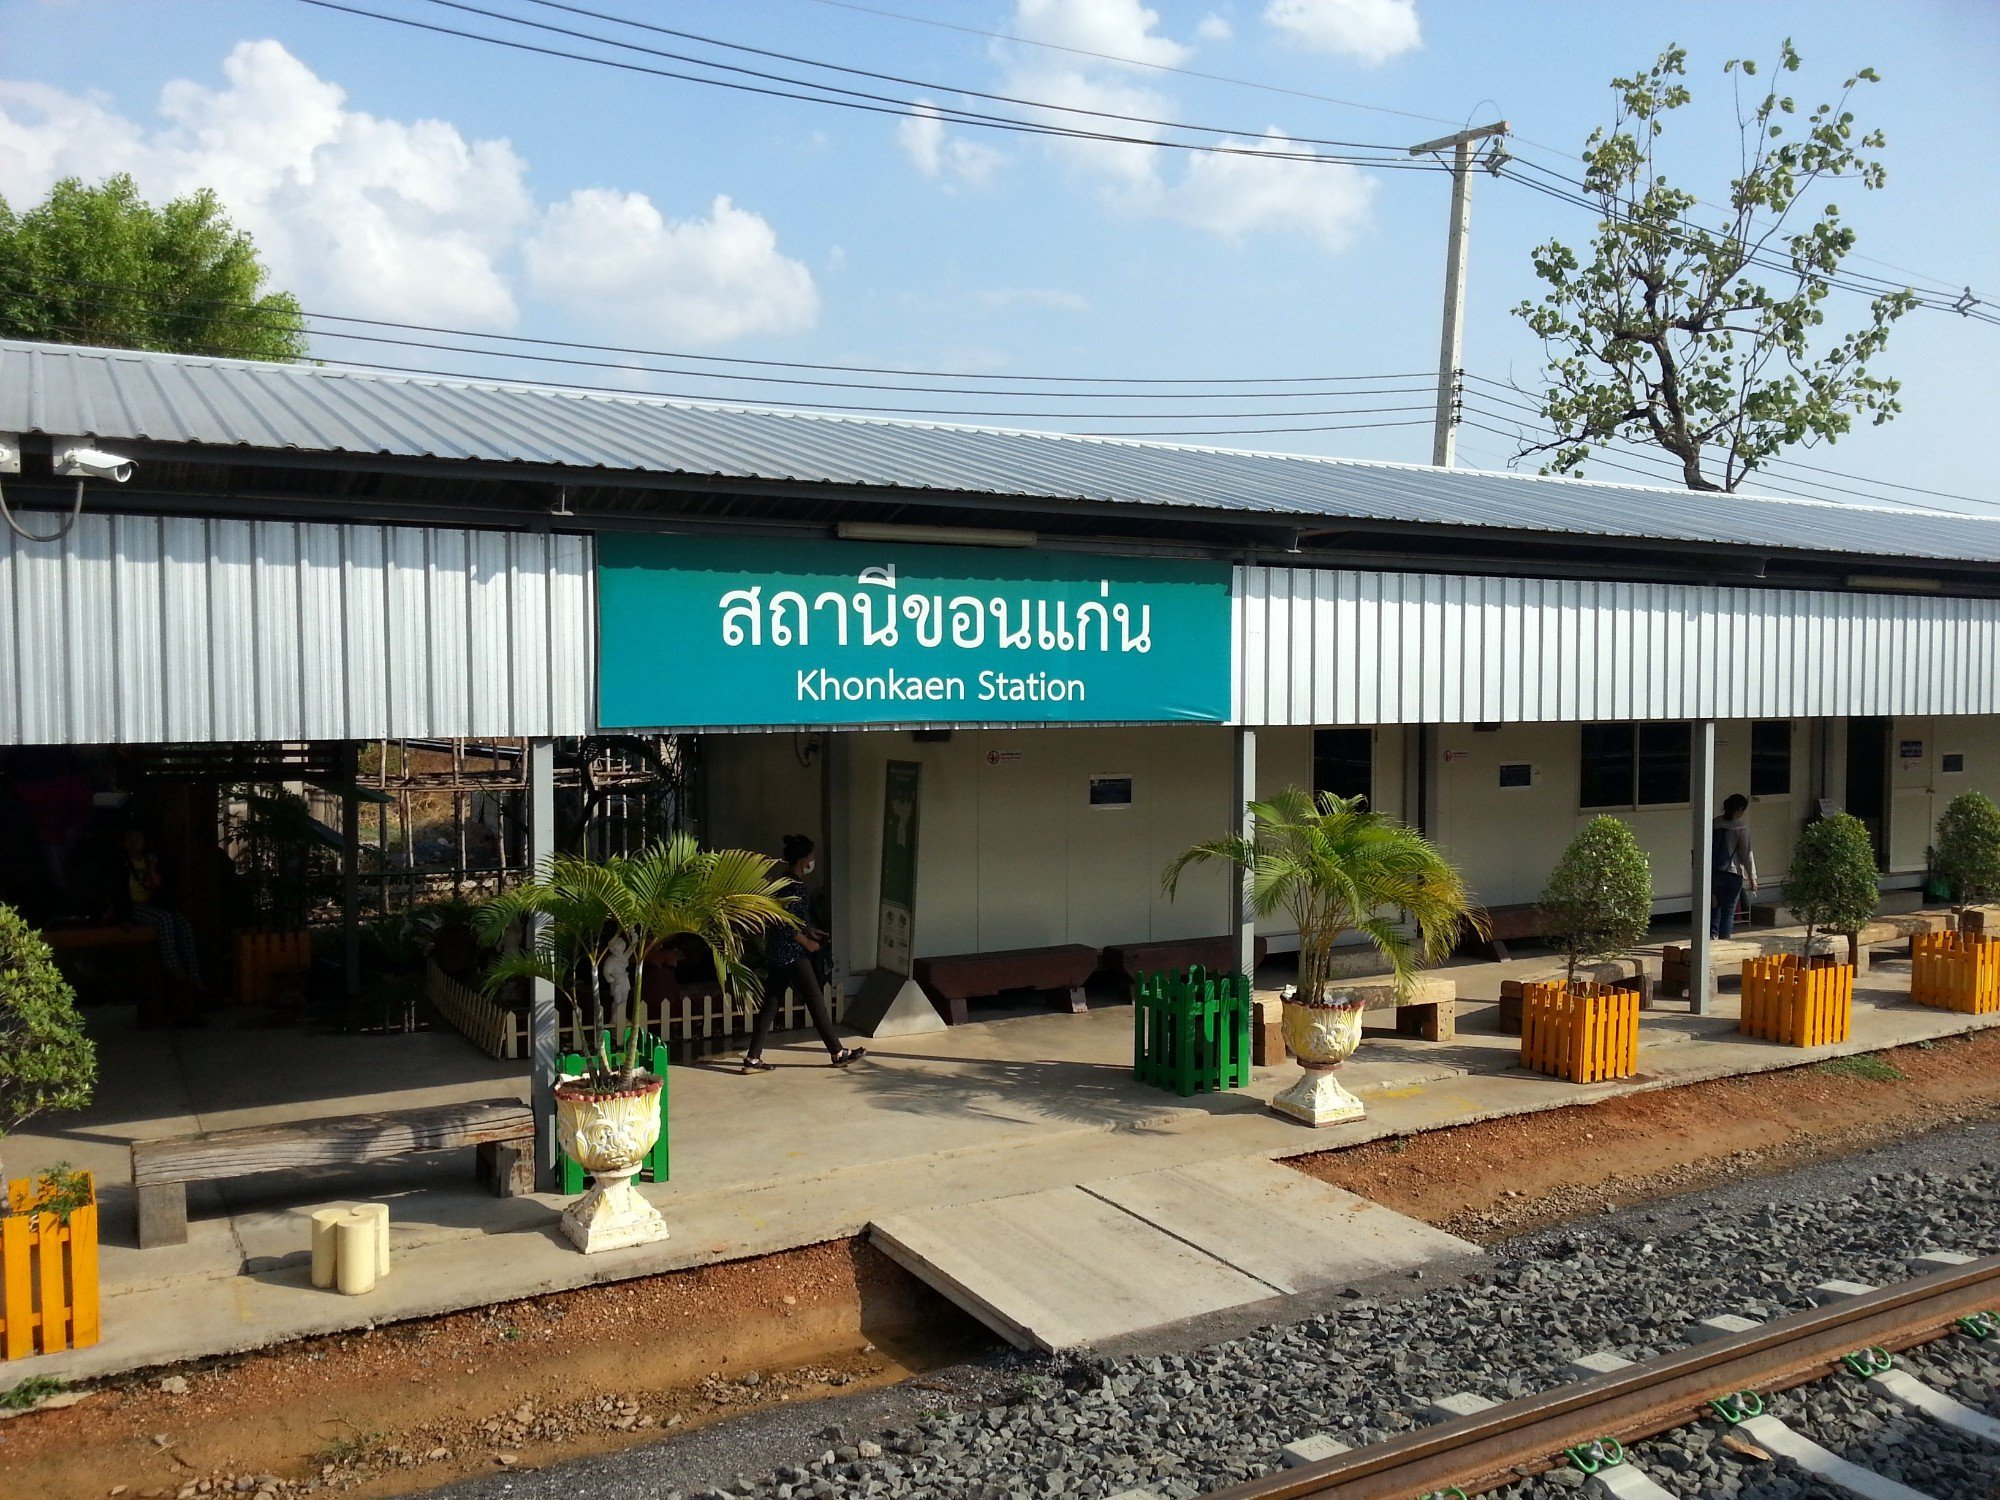 Khon Kaen Temporary Railway Station